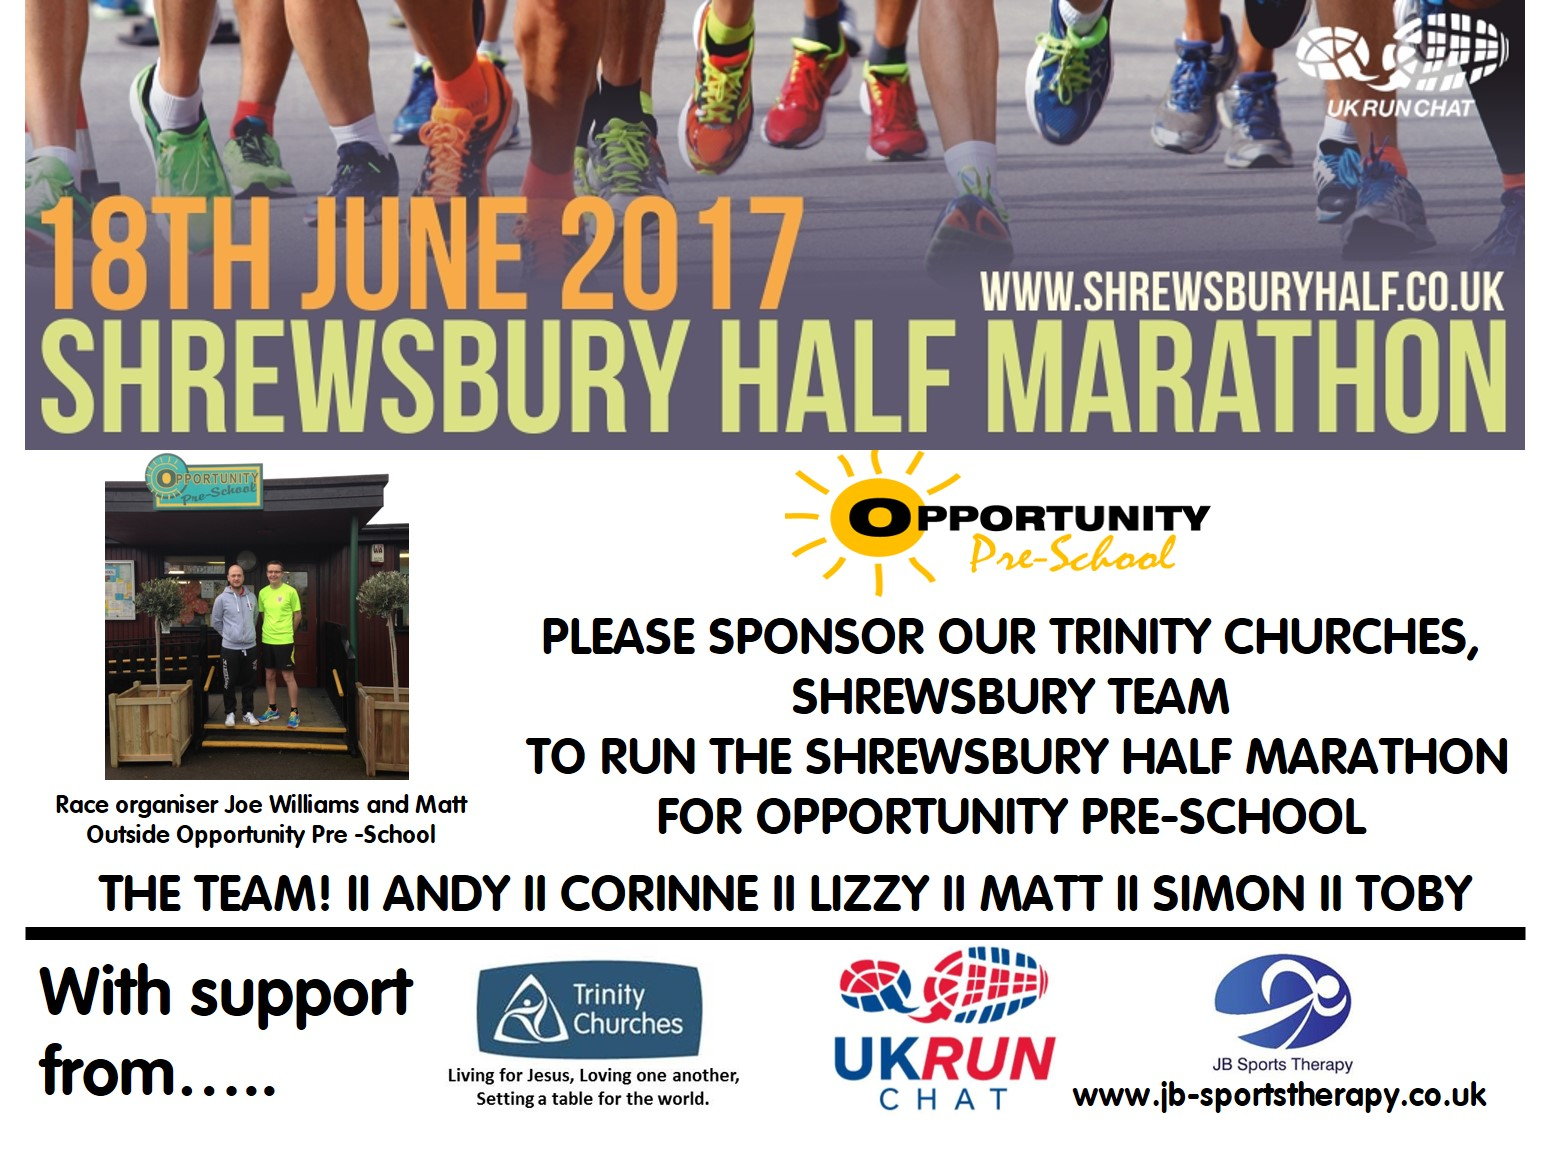 Trinity Churches to Run Shrewsbury Half Marathon